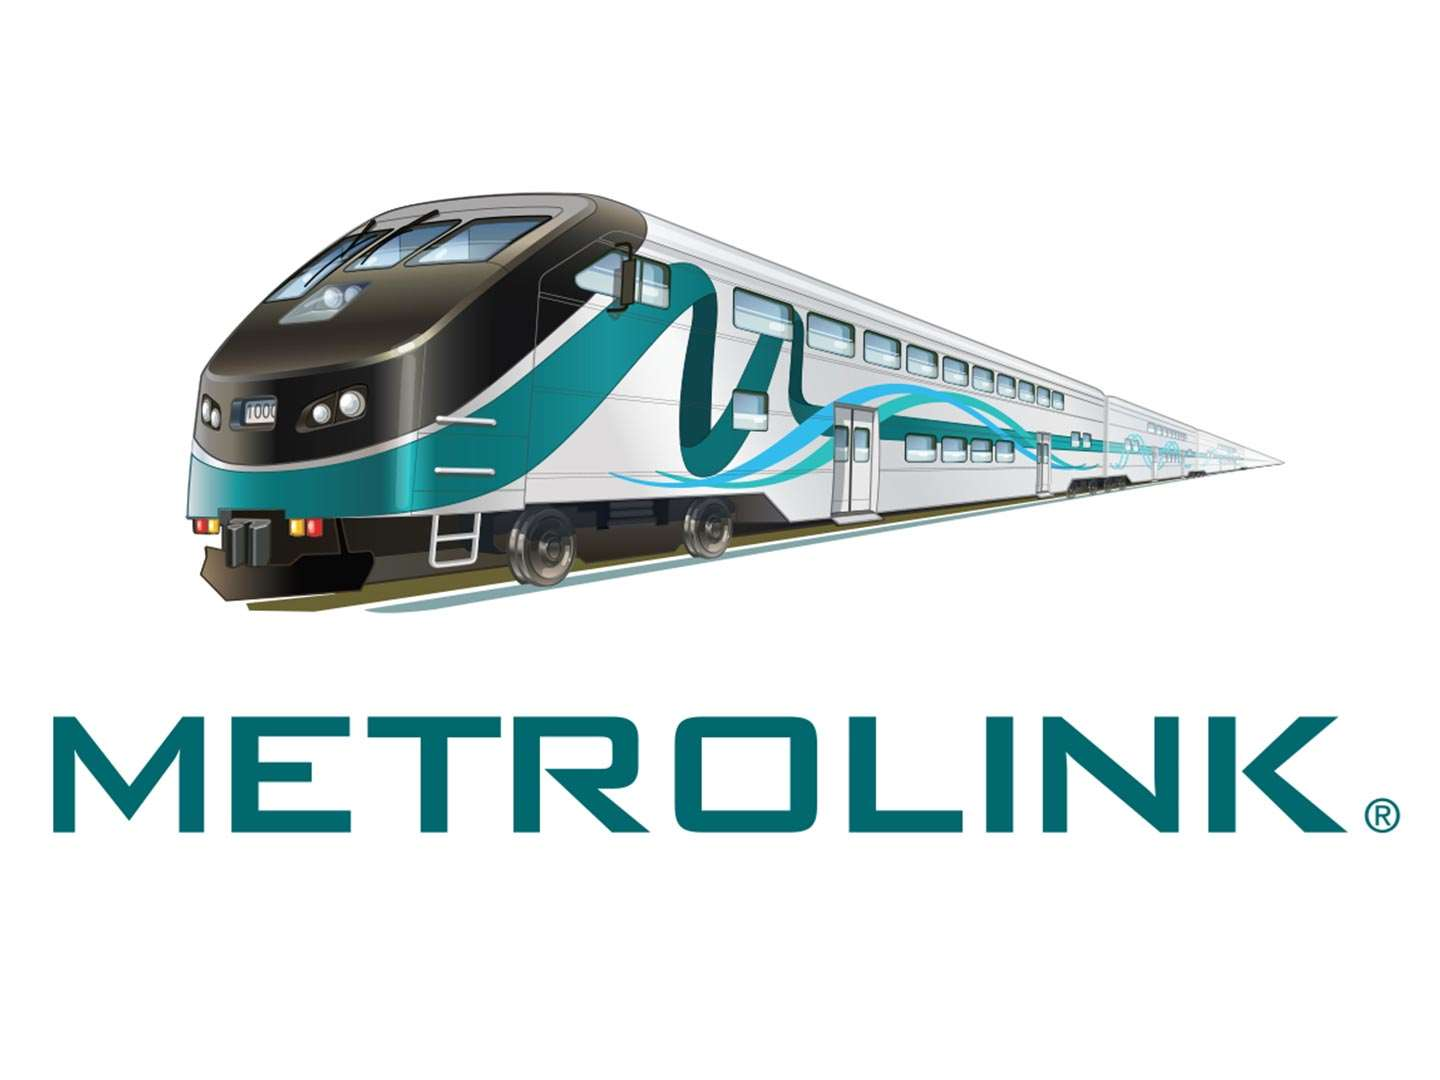 Metrolink's $10 weekend pass